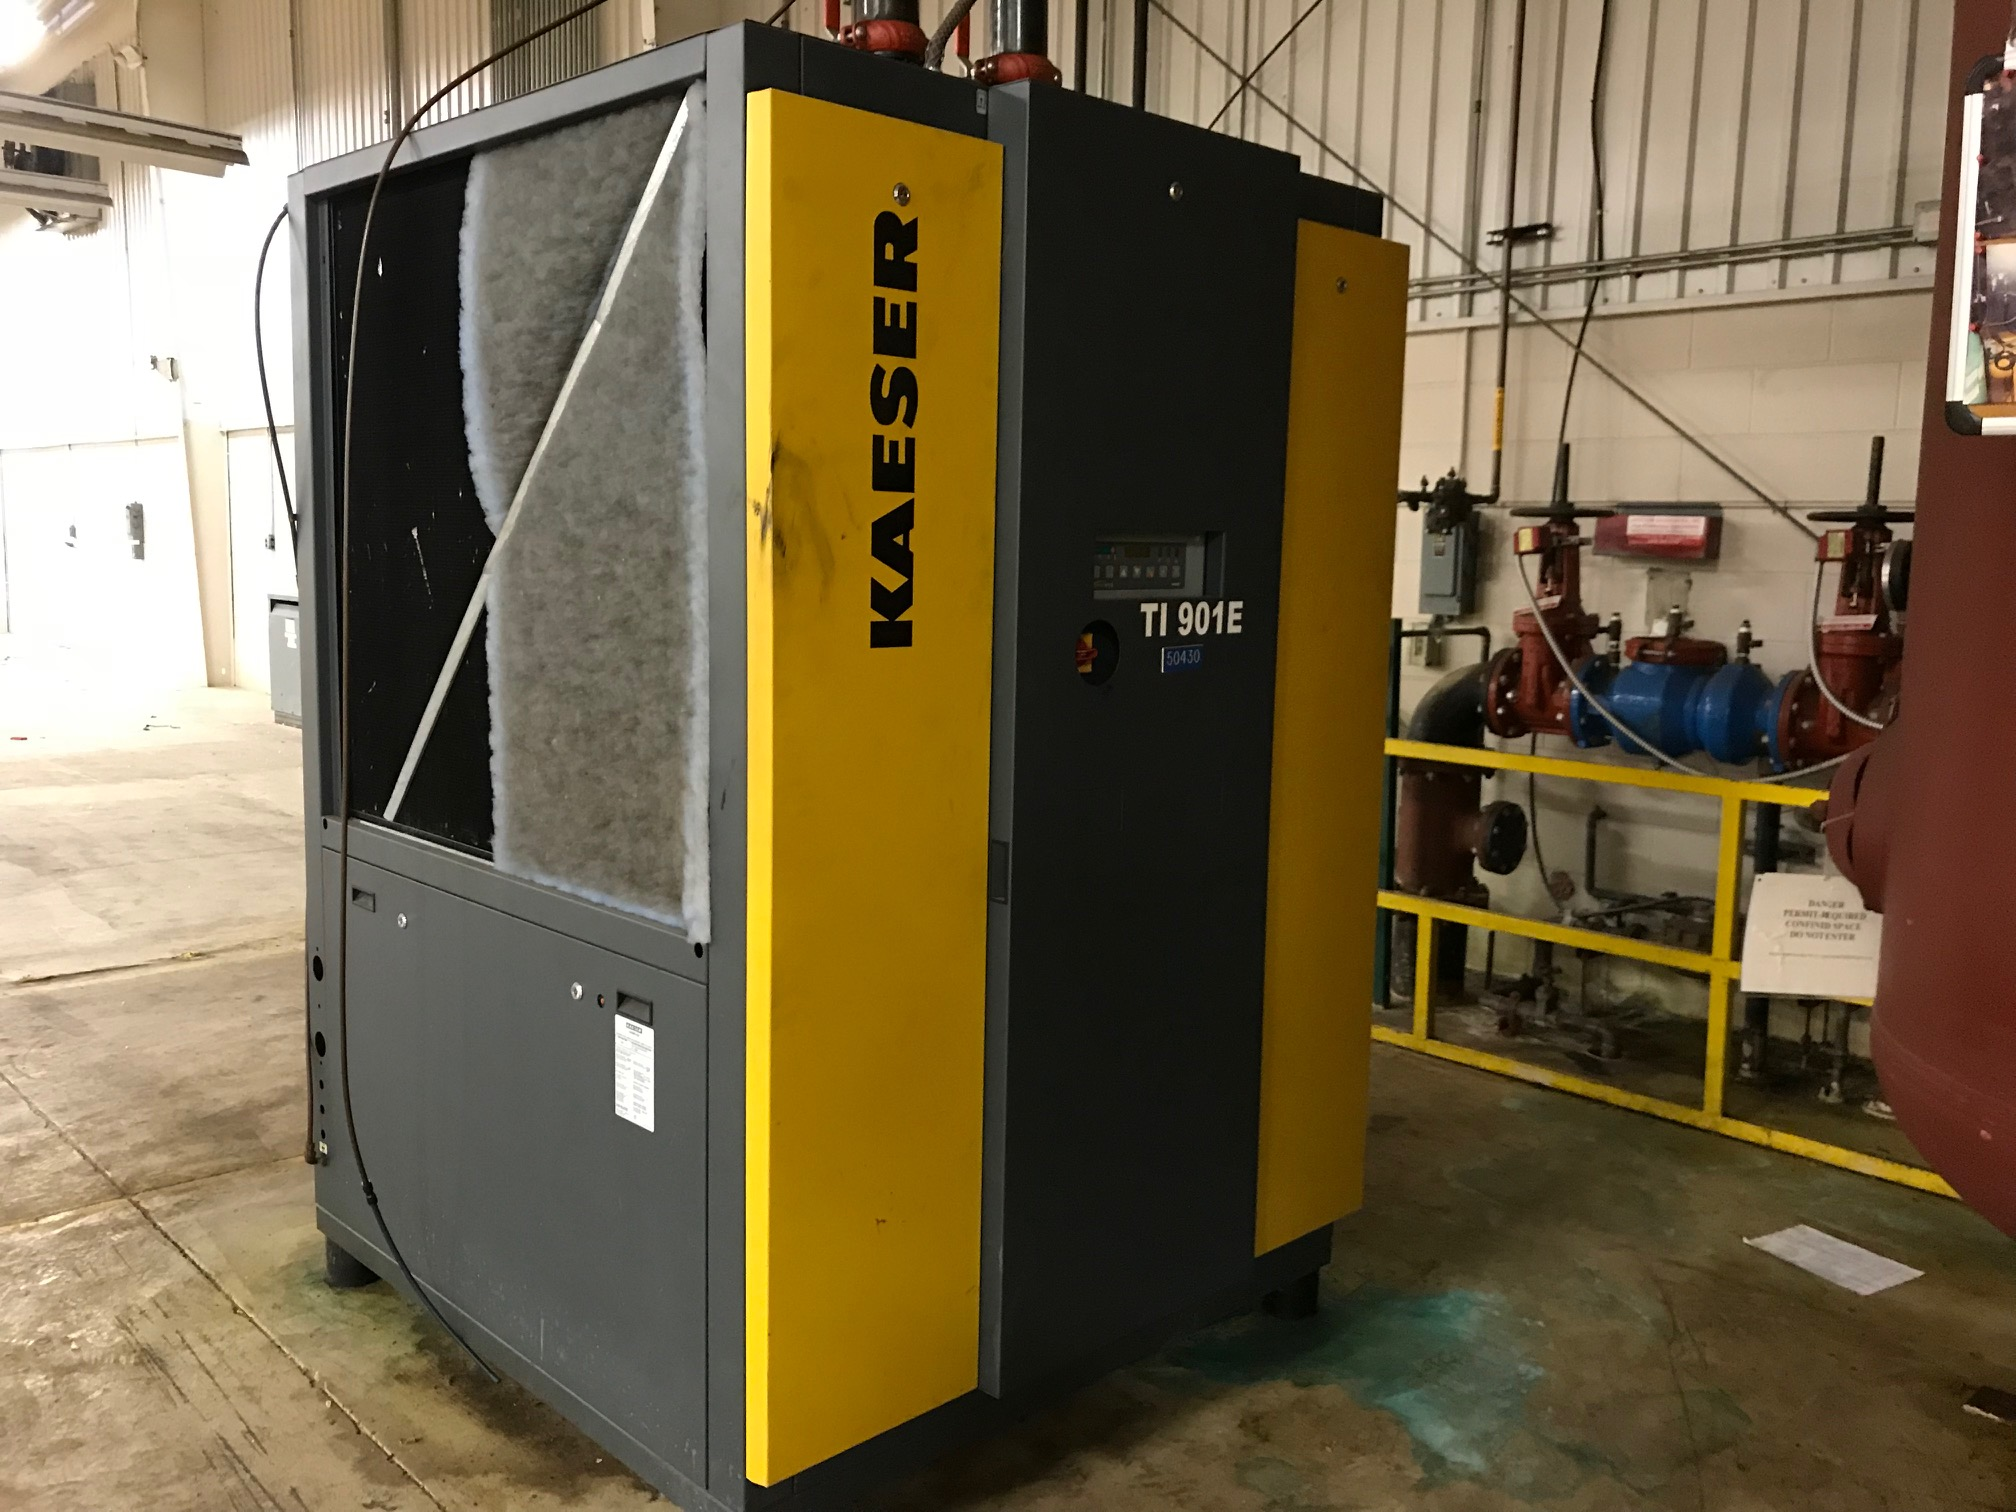 Kaeser 3000 cfm Cycling Refrigerated Air Dryer